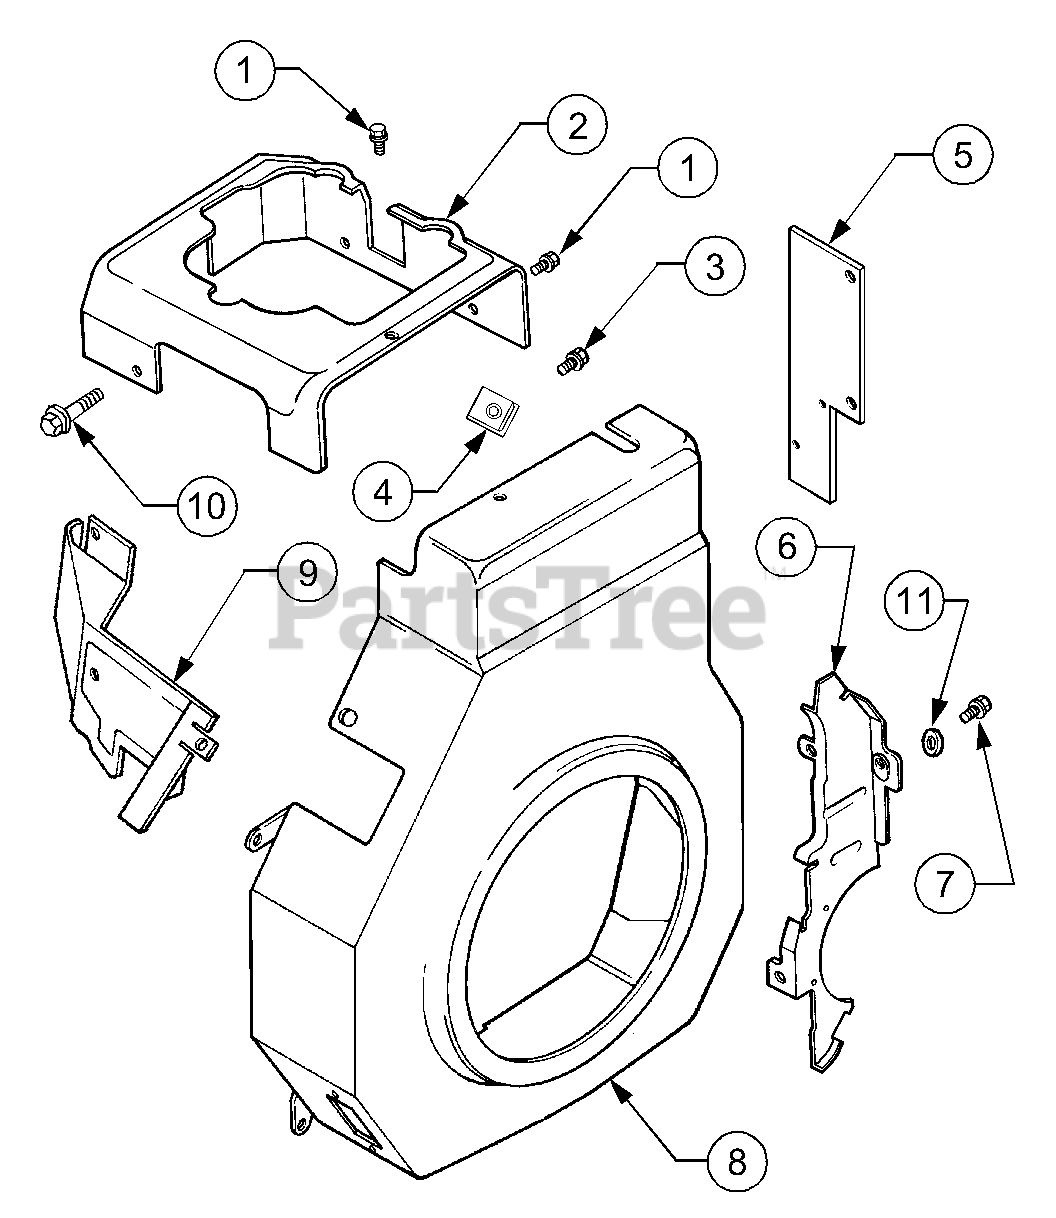 [DIAGRAM] Cub Cadet Model 2166 Wiring Diagram FULL Version